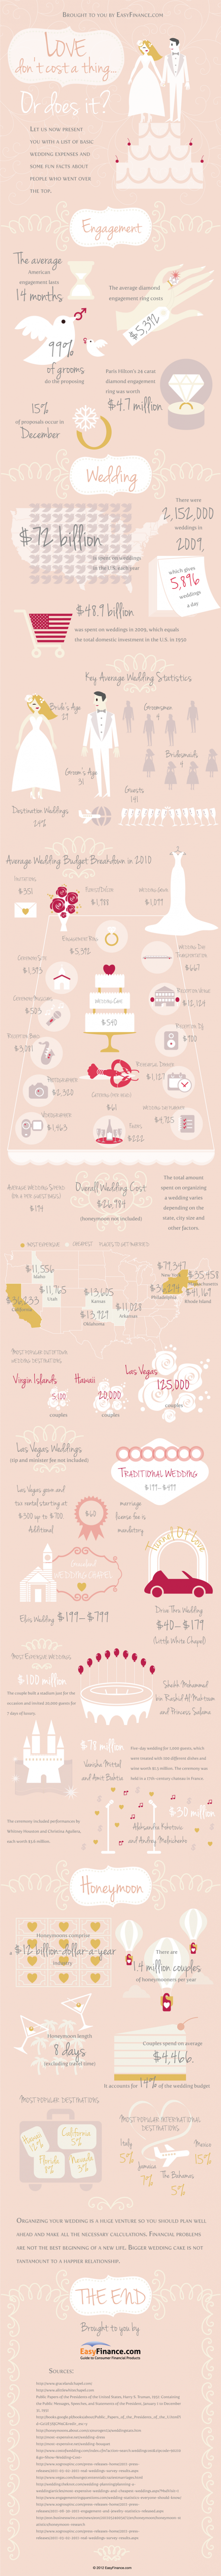 Love Don&#039;t Cost a Thing. Or Does It?  Infographic